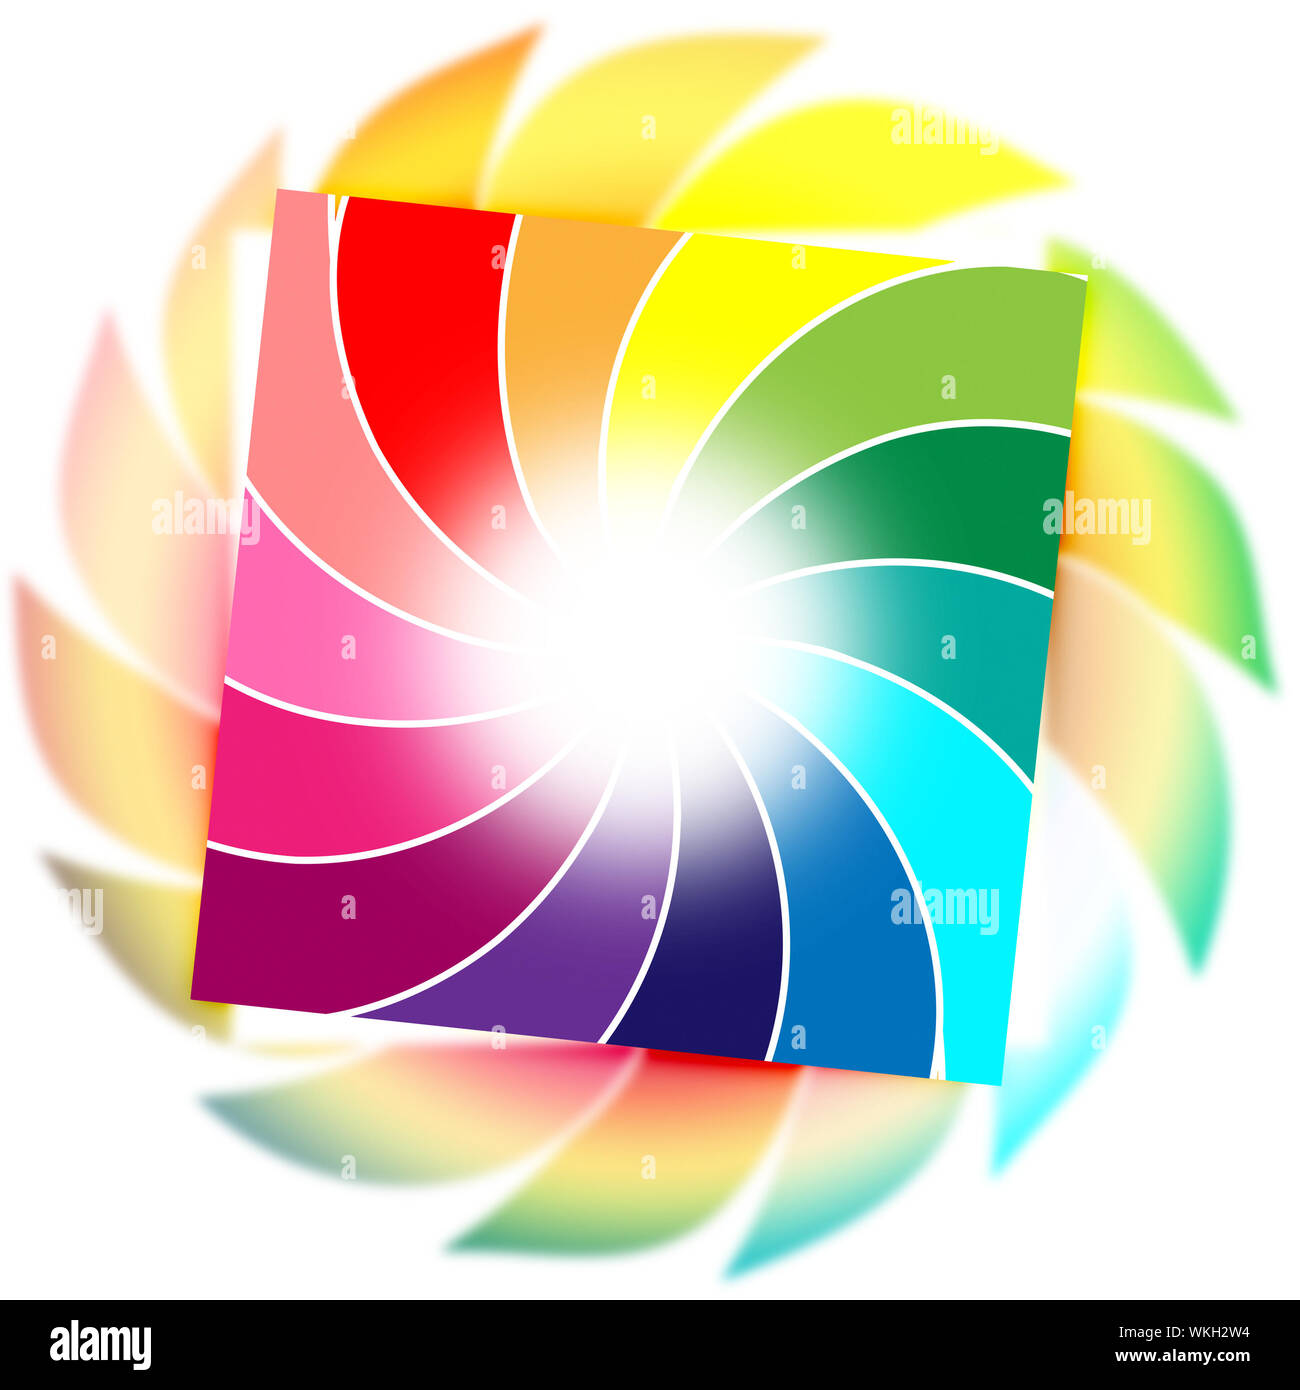 Color Spiral Meaning Vortex Background And Whirl Stock Photo